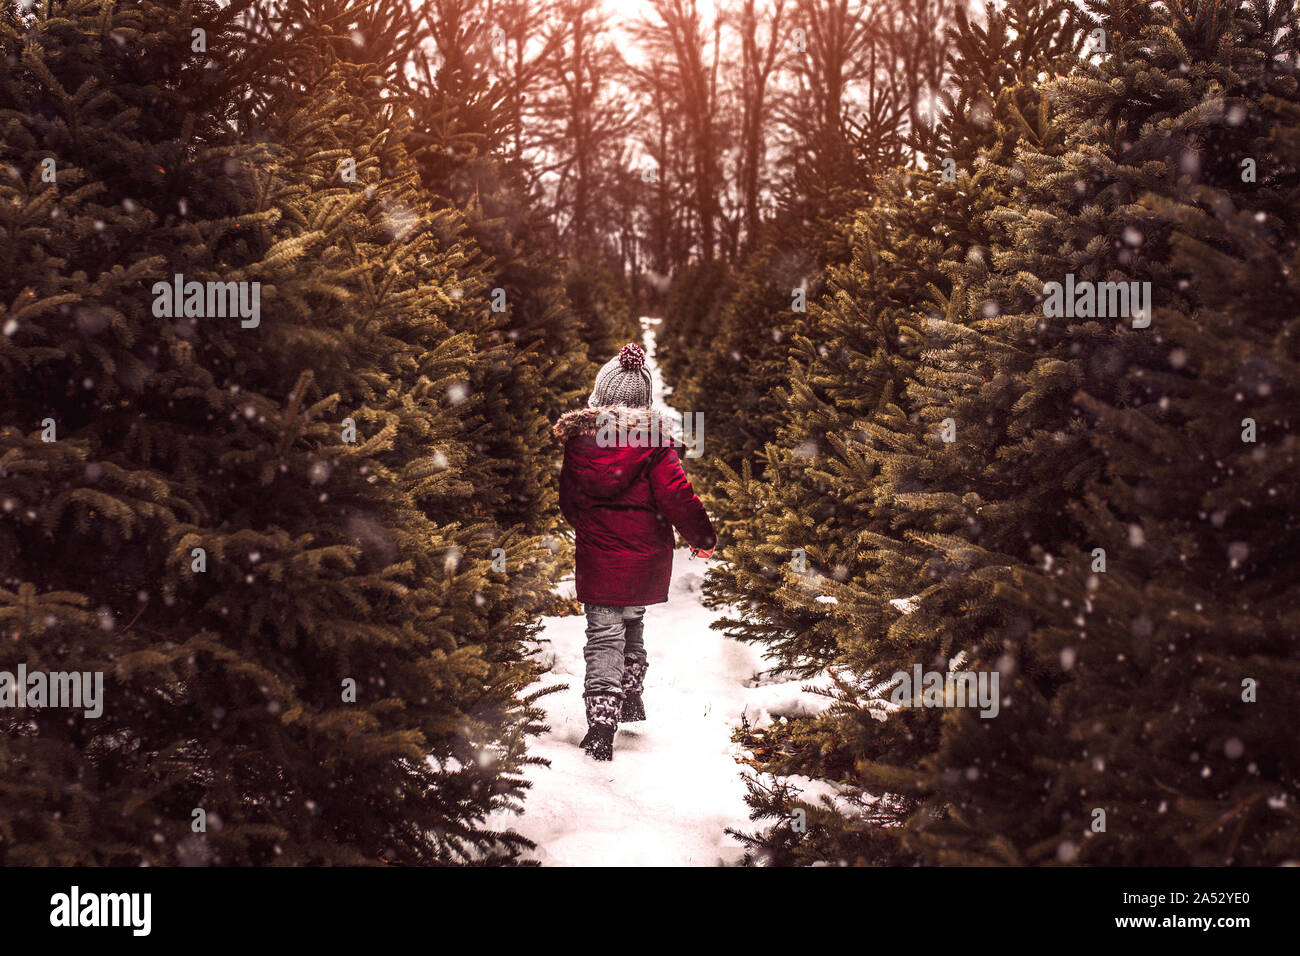 Boy searching for a perfect Christmas tree on a snowy winter day Stock Photo